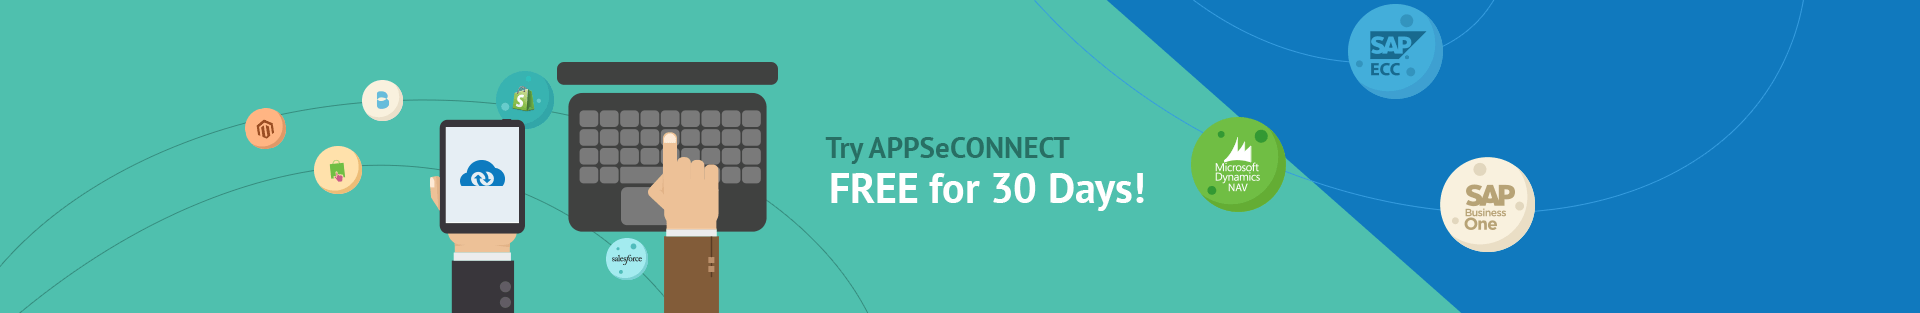 appseconnect-free-trial